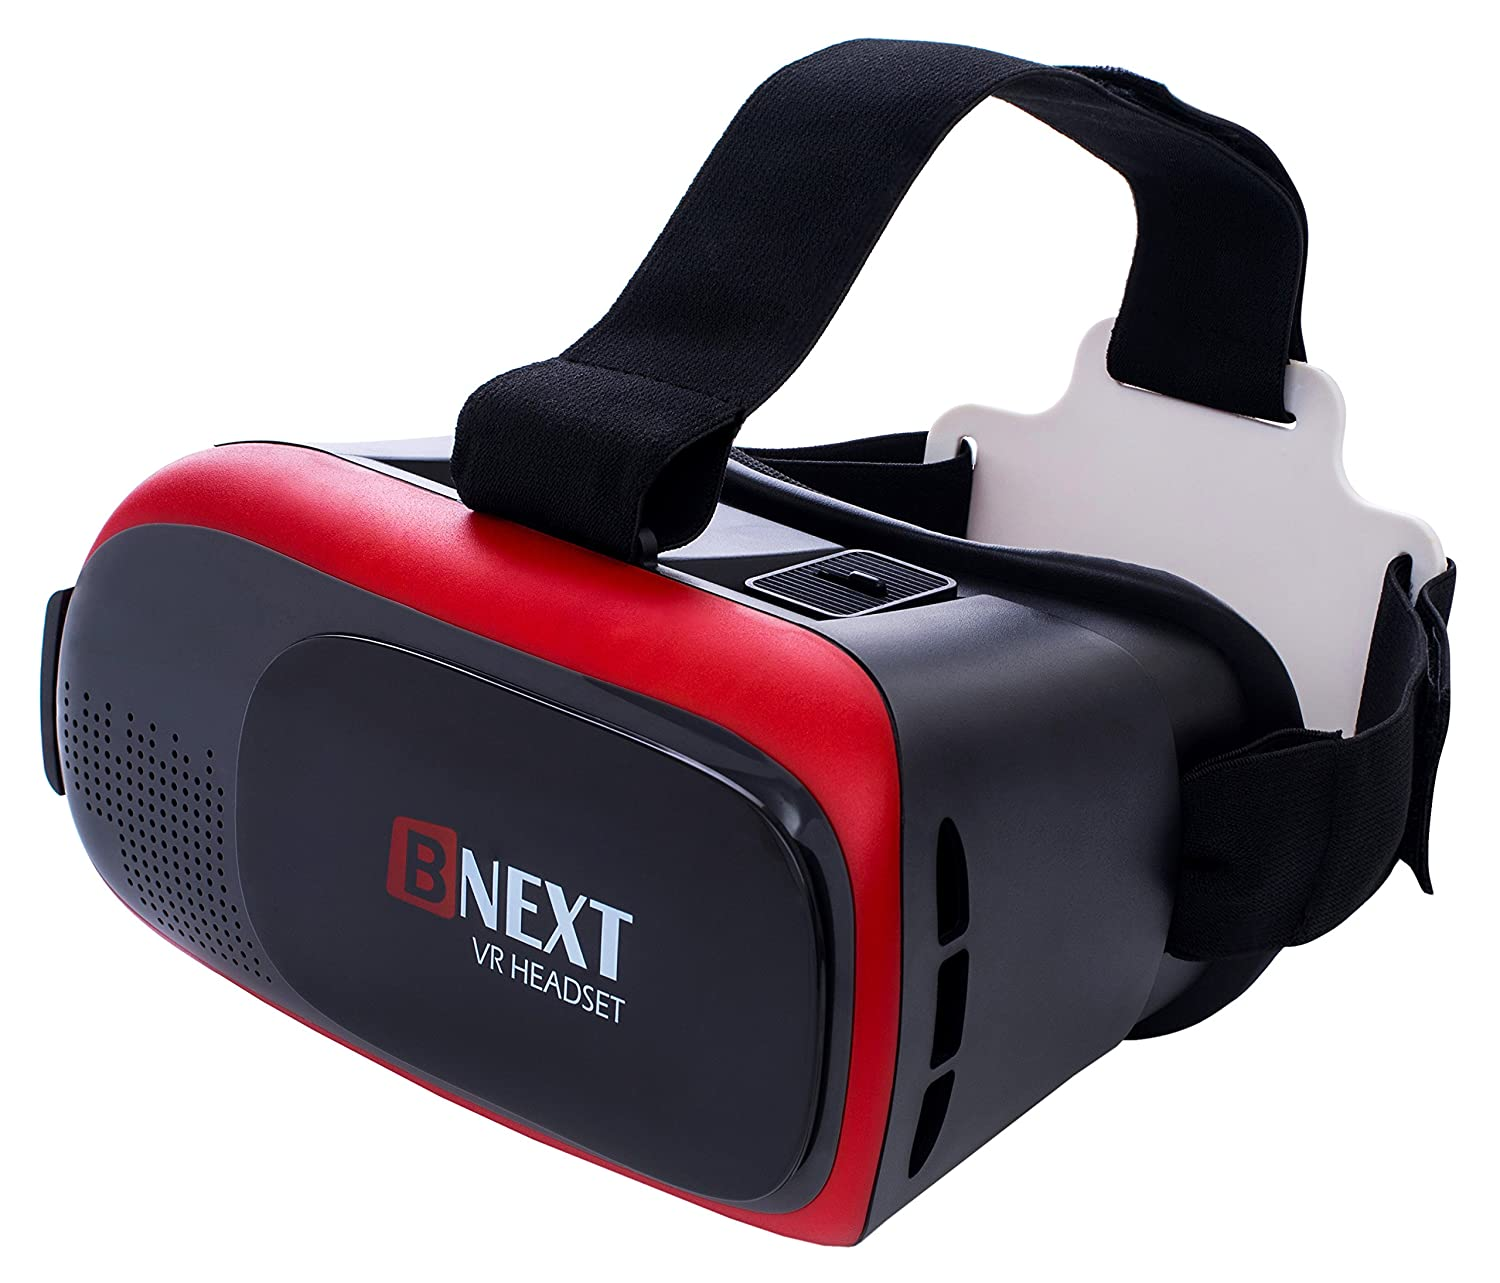 Best Vr Headset 2020.Top 5 Best Vr Headsets For Smartphones Reviews 2019 2020 On